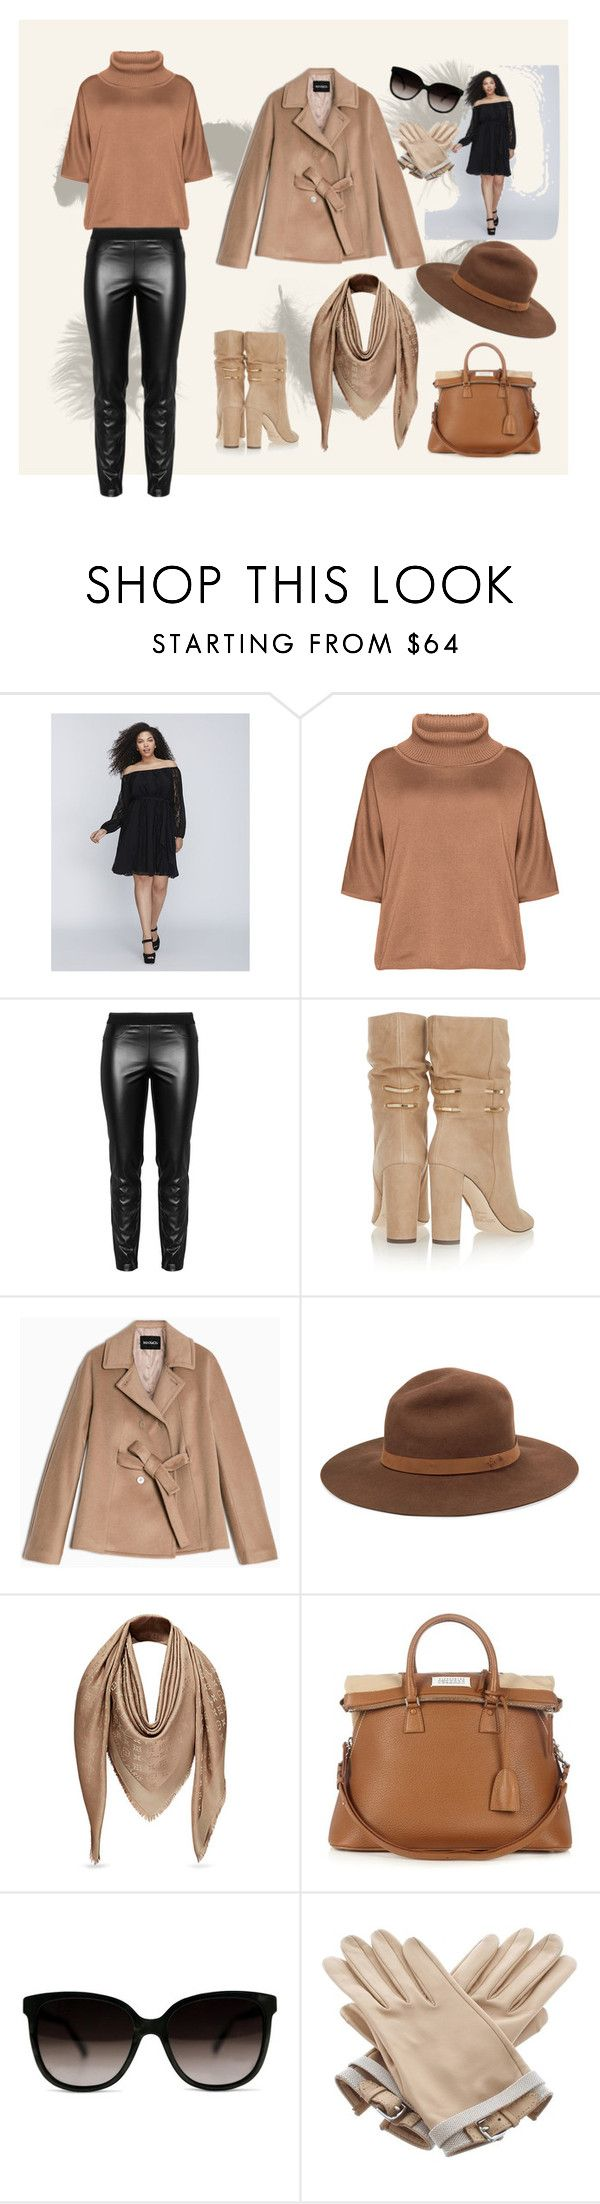 """beinstyle even in cold weather"" by litaeva on Polyvore featuring Lane Bryant, Isolde Roth, Elena Mirò, Jimmy Choo, Max&Co., rag & bone, Maison Margiela и Hermès"